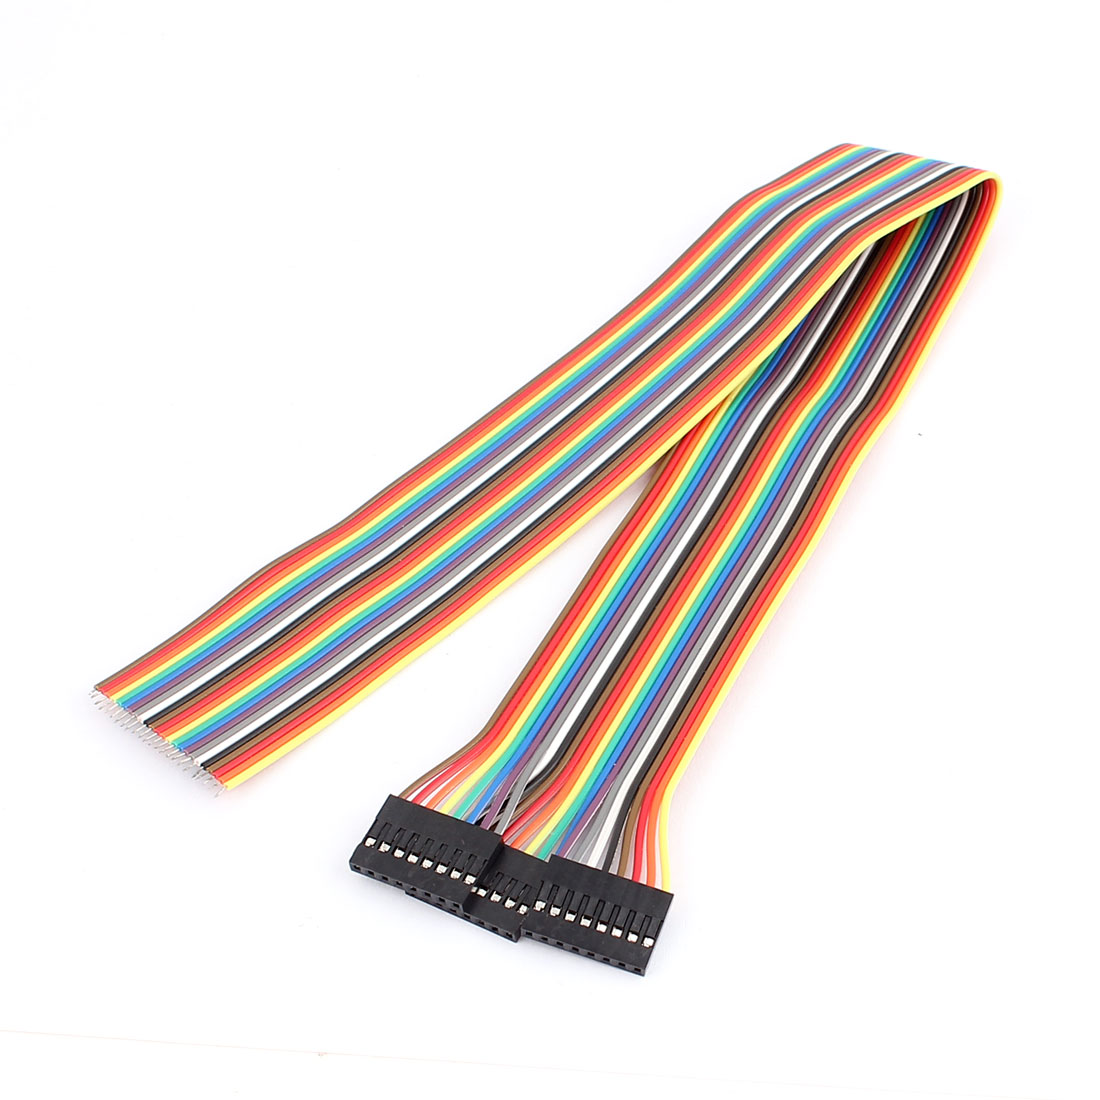 3 Pcs 40cm Length Female 2.54mm Pitch 8P Single Head Jumper Wire Cable